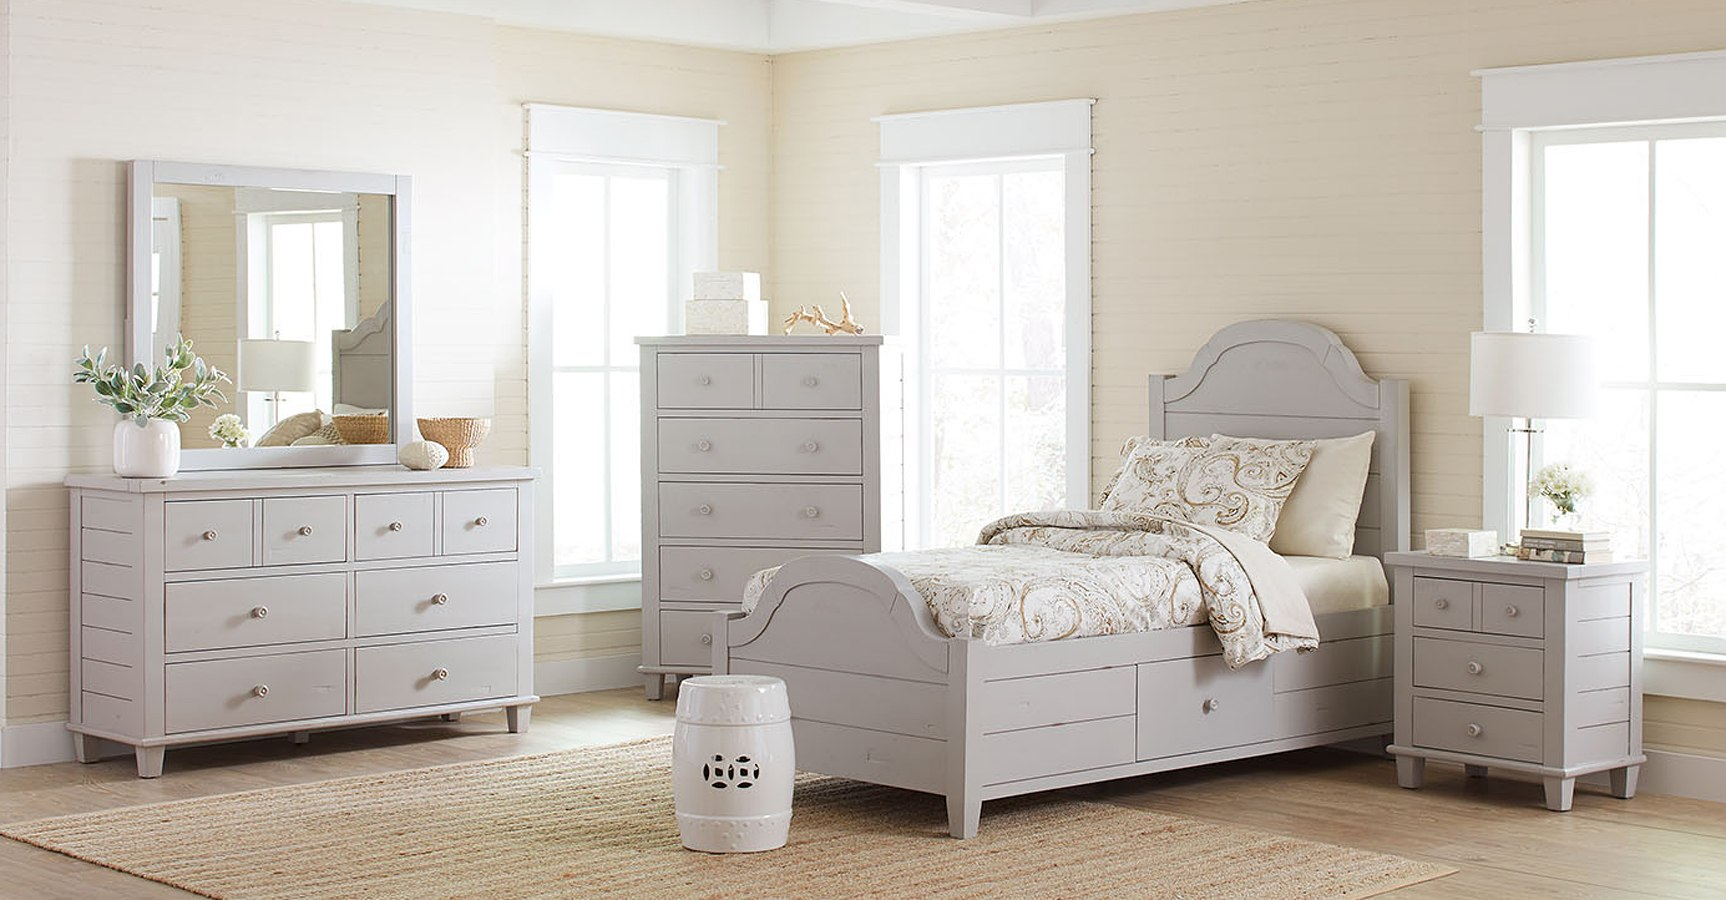 Chesapeake youth storage bedroom set dove grey by jofran - Youth bedroom furniture with storage ...